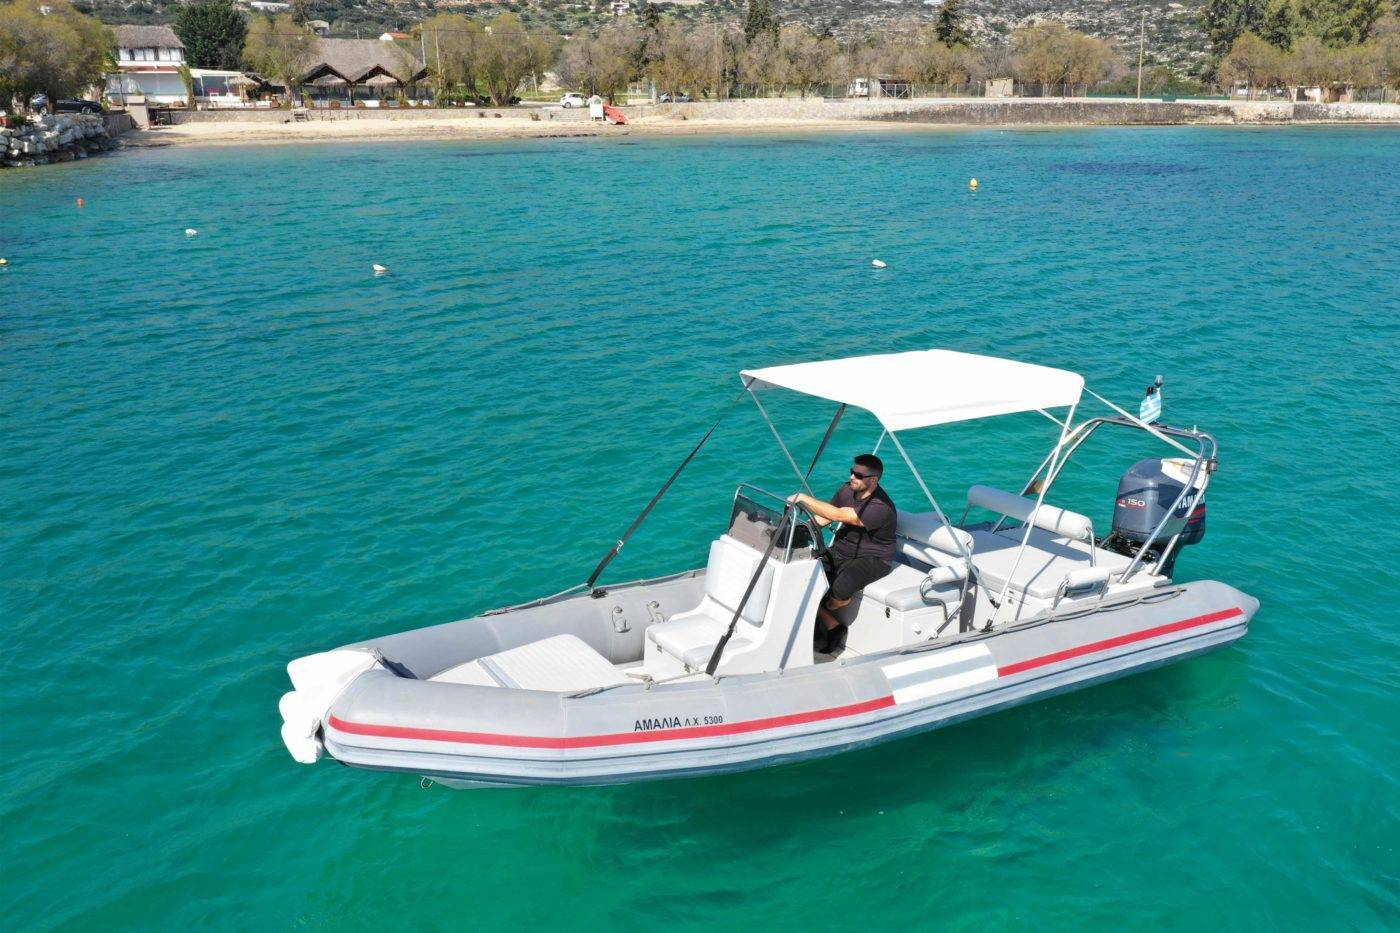 Rent a boat Chania_Notos_Mare_Rent_A_Boat_Chania_Marathi_Sfakia_150hp